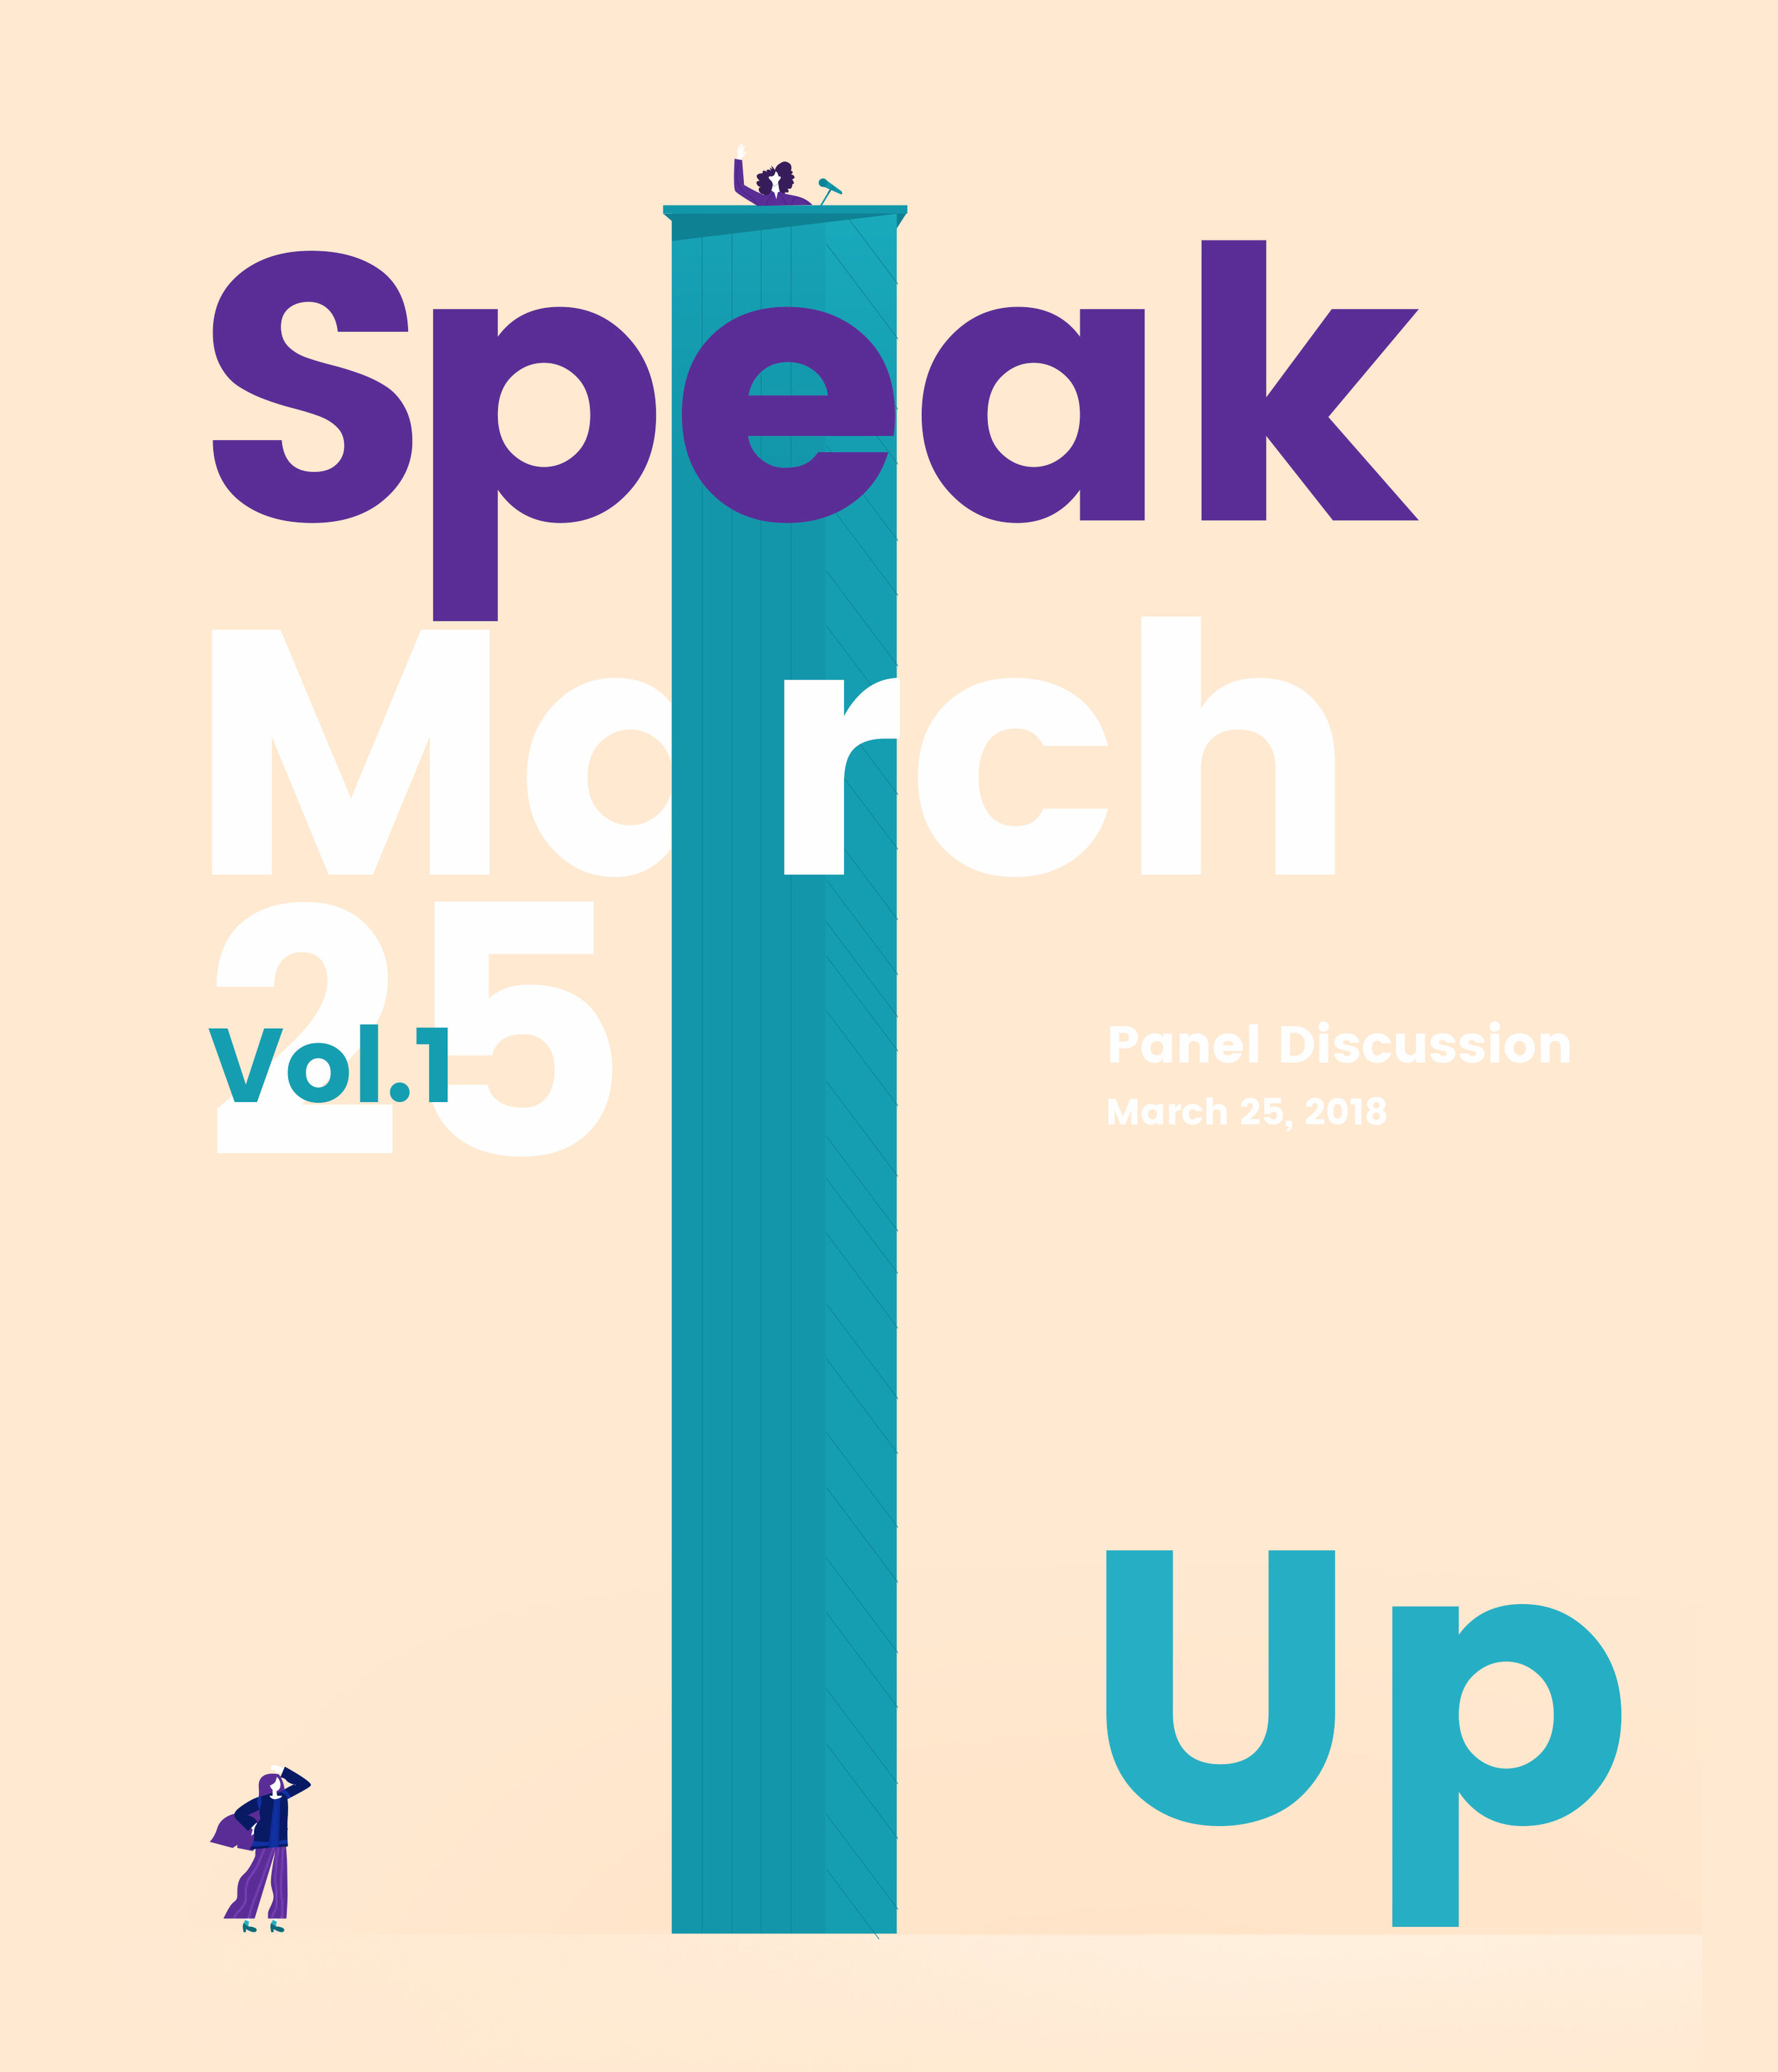 Speak up! Vol 1. - Panel DiscussionJoin us on Sunday, March 25th for a speaking event celebrating some of our most stellar leading ladies. We are honored to present a panel comprised of these spectcular and accomplished individuals: Leanne Dare, Lilit Hayrapetyan, Lauren Indovina & Amelia GillerLearn more ➝